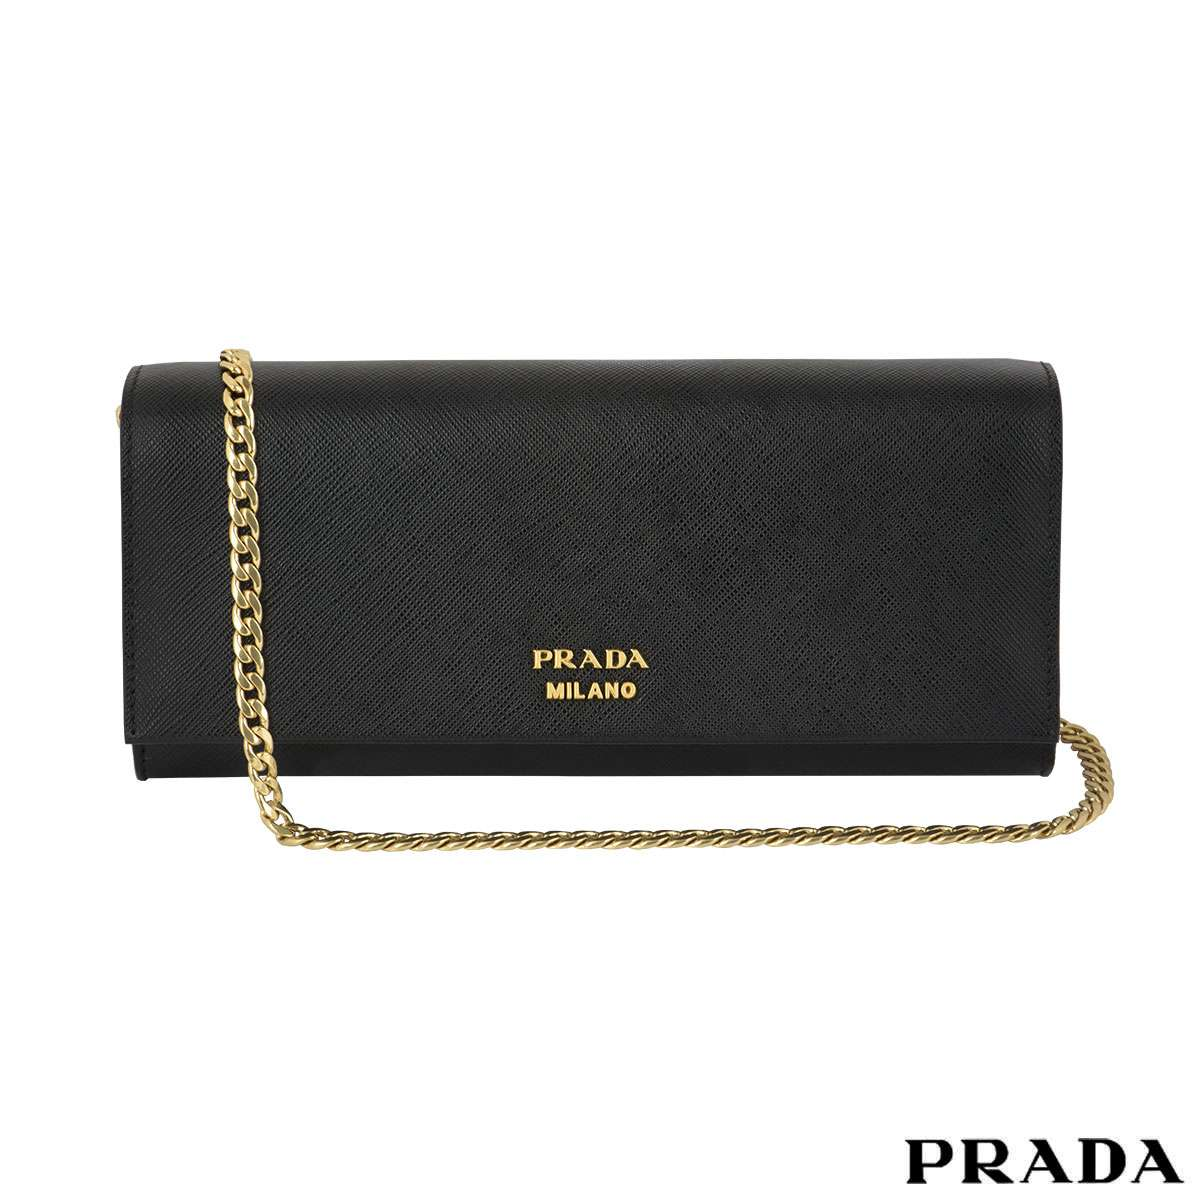 Prada Saffiano Black Clutch Bag